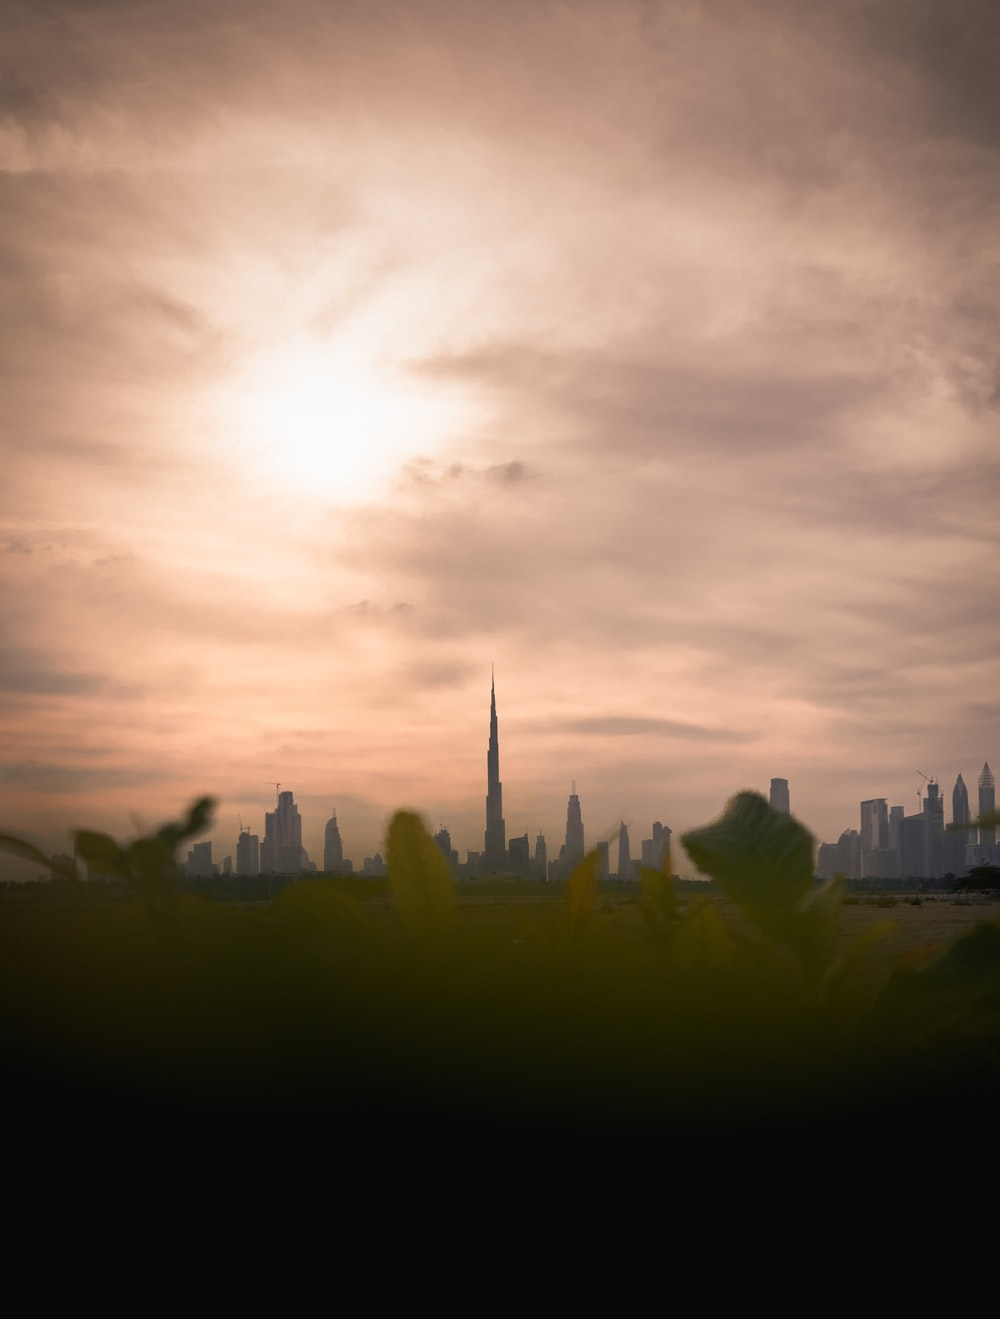 green-leafed plants with Burj Khalifa view during daytime